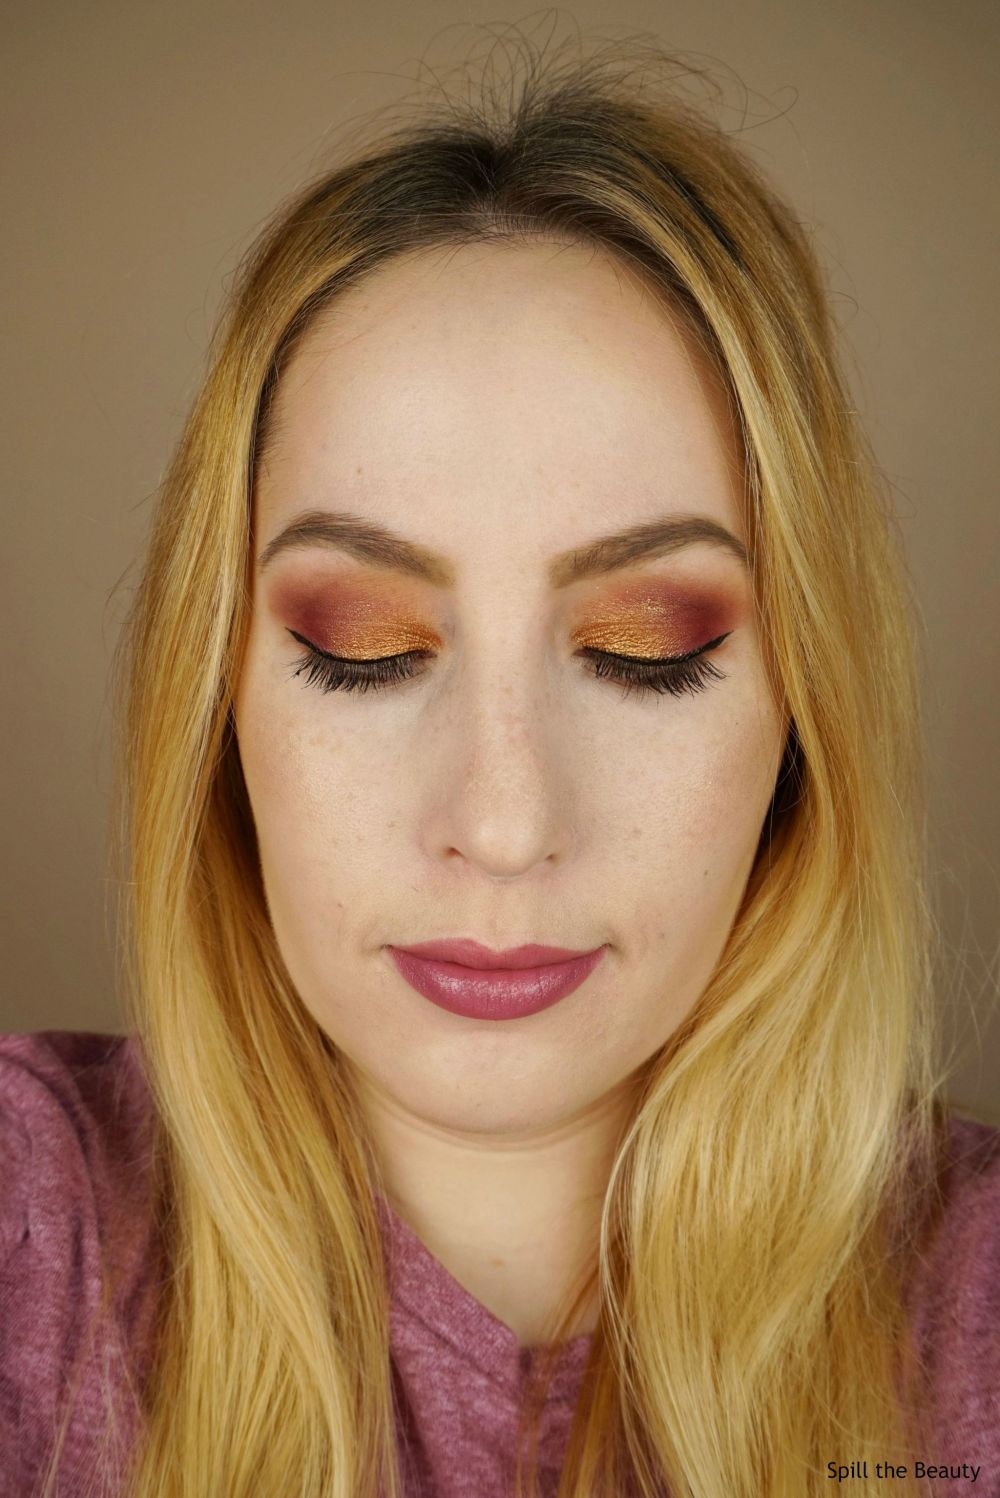 Face of the Day – Queen of Hearts